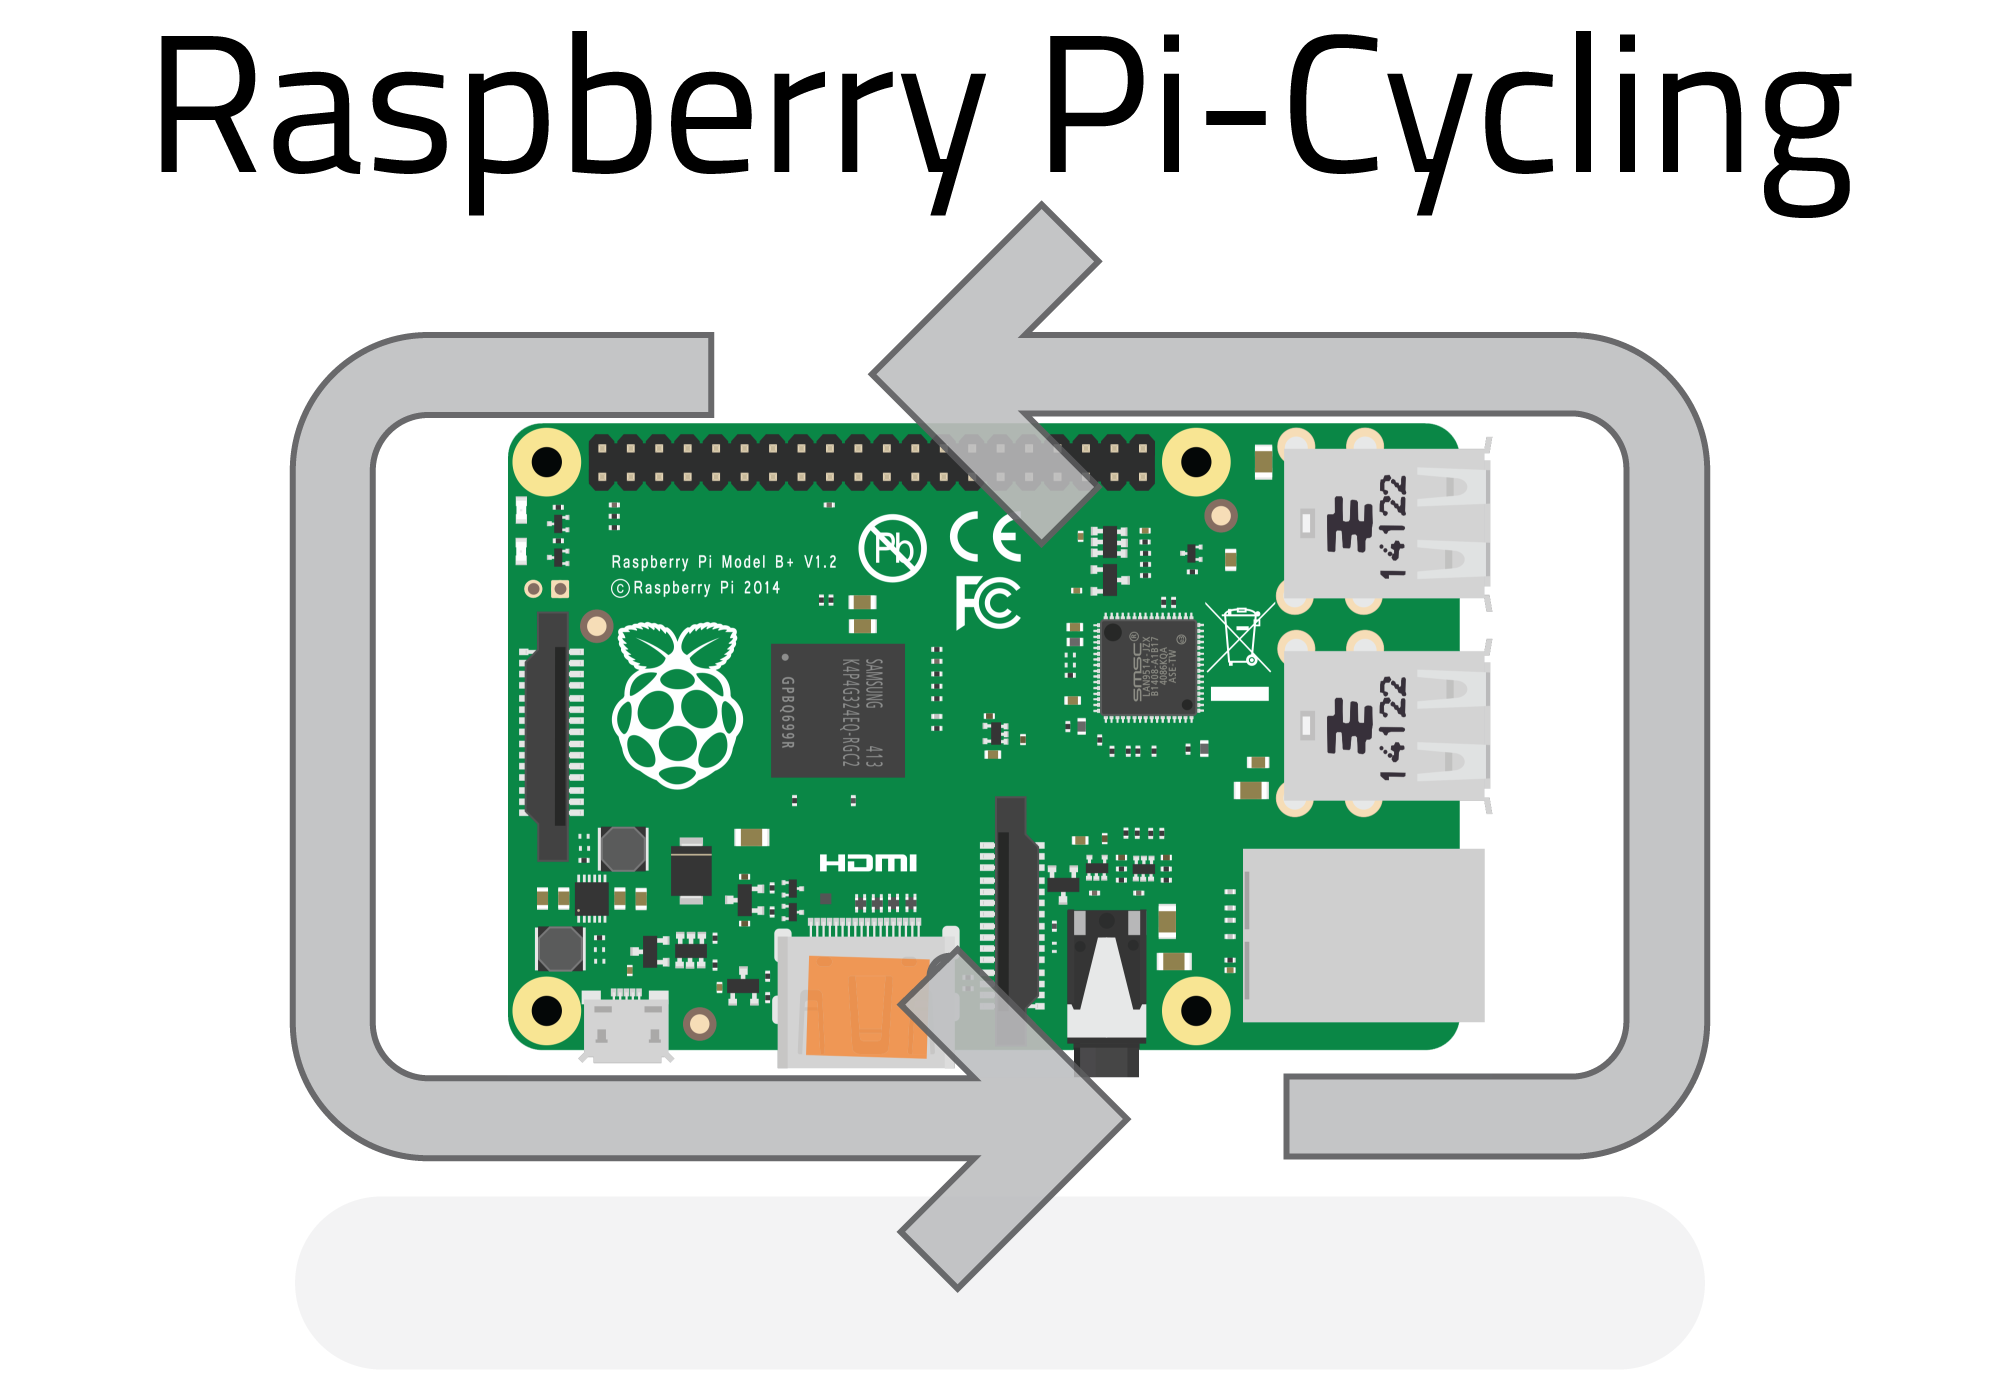 Raspberry Pi Recycling